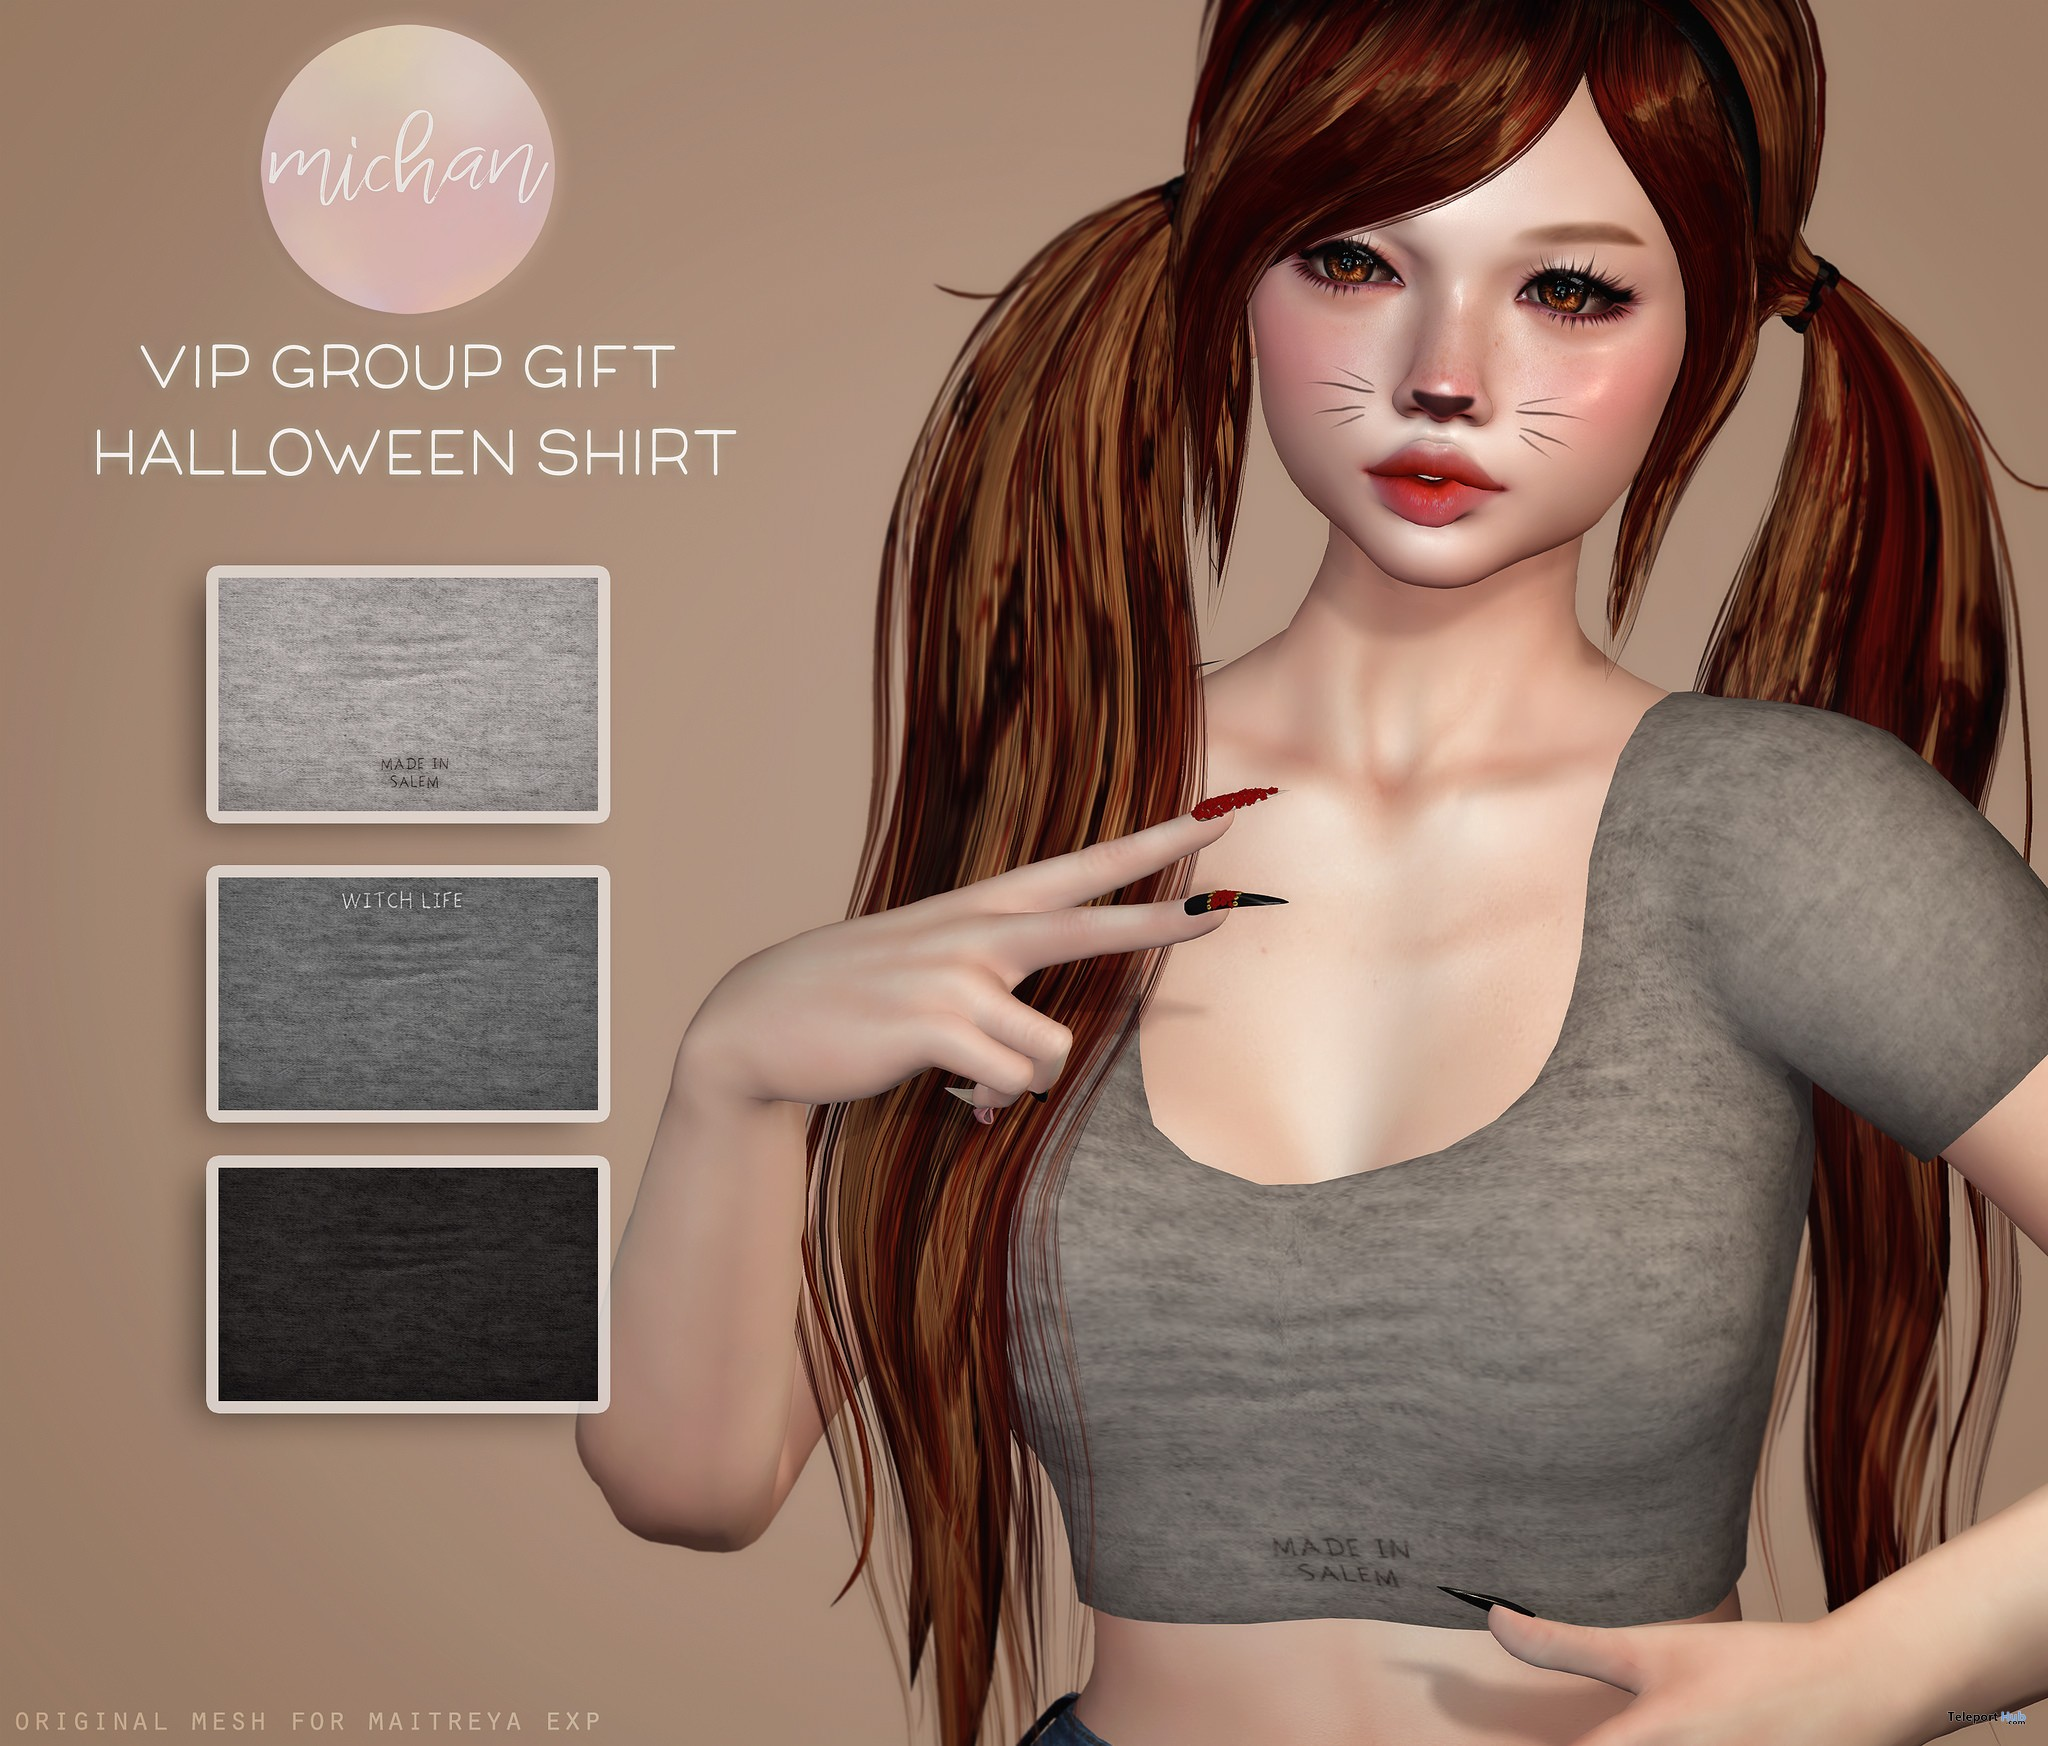 Halloween Top October 2017 Group Gift by MICHAN- Teleport Hub - teleporthub.com